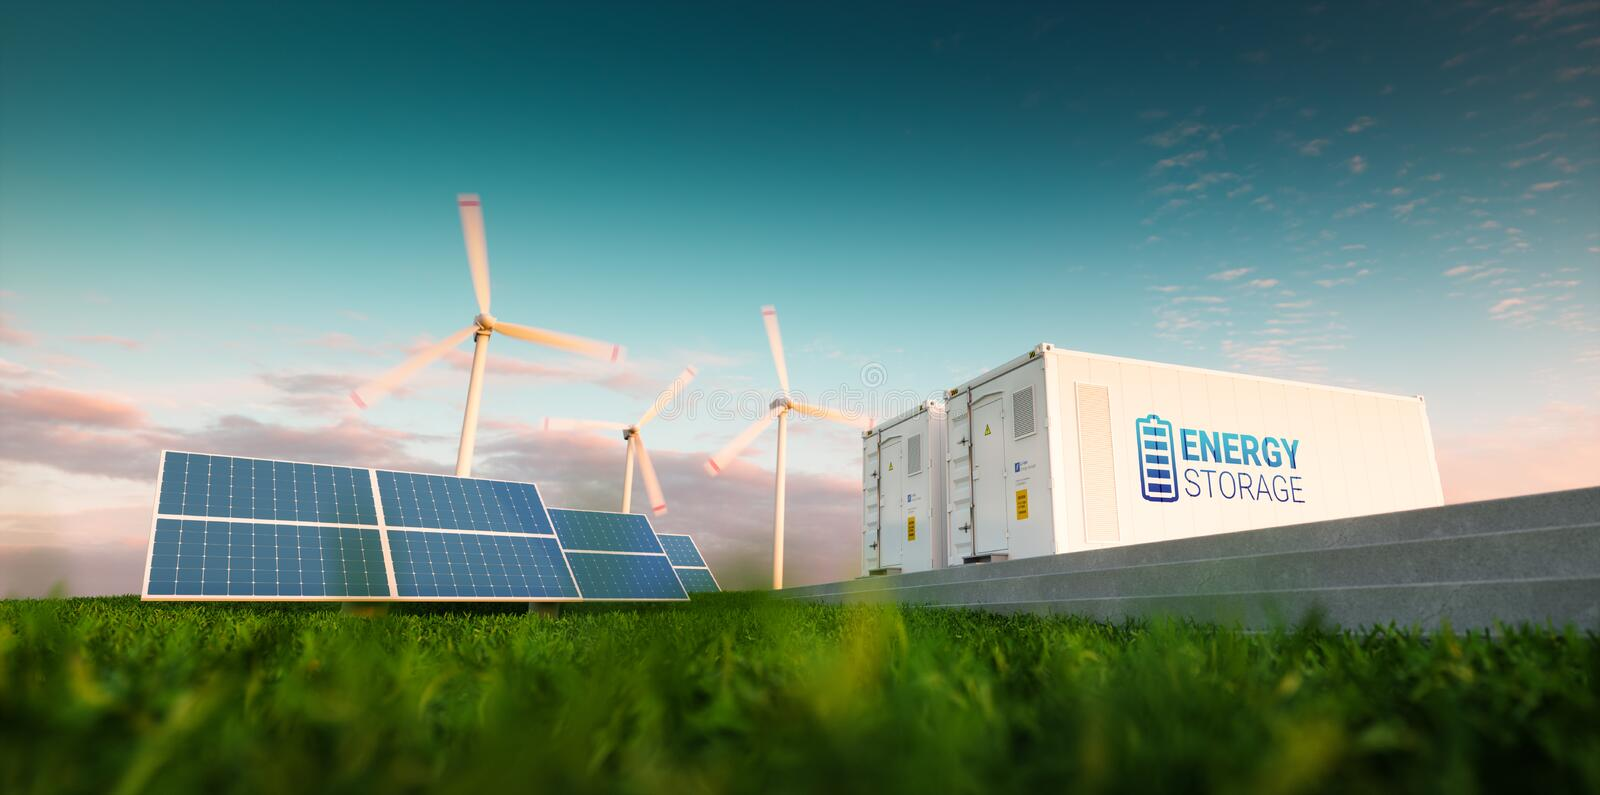 Concept of energy storage system. Renewable energy - photovoltaics, wind turbines and Li-ion battery container in morning fresh n stock illustration